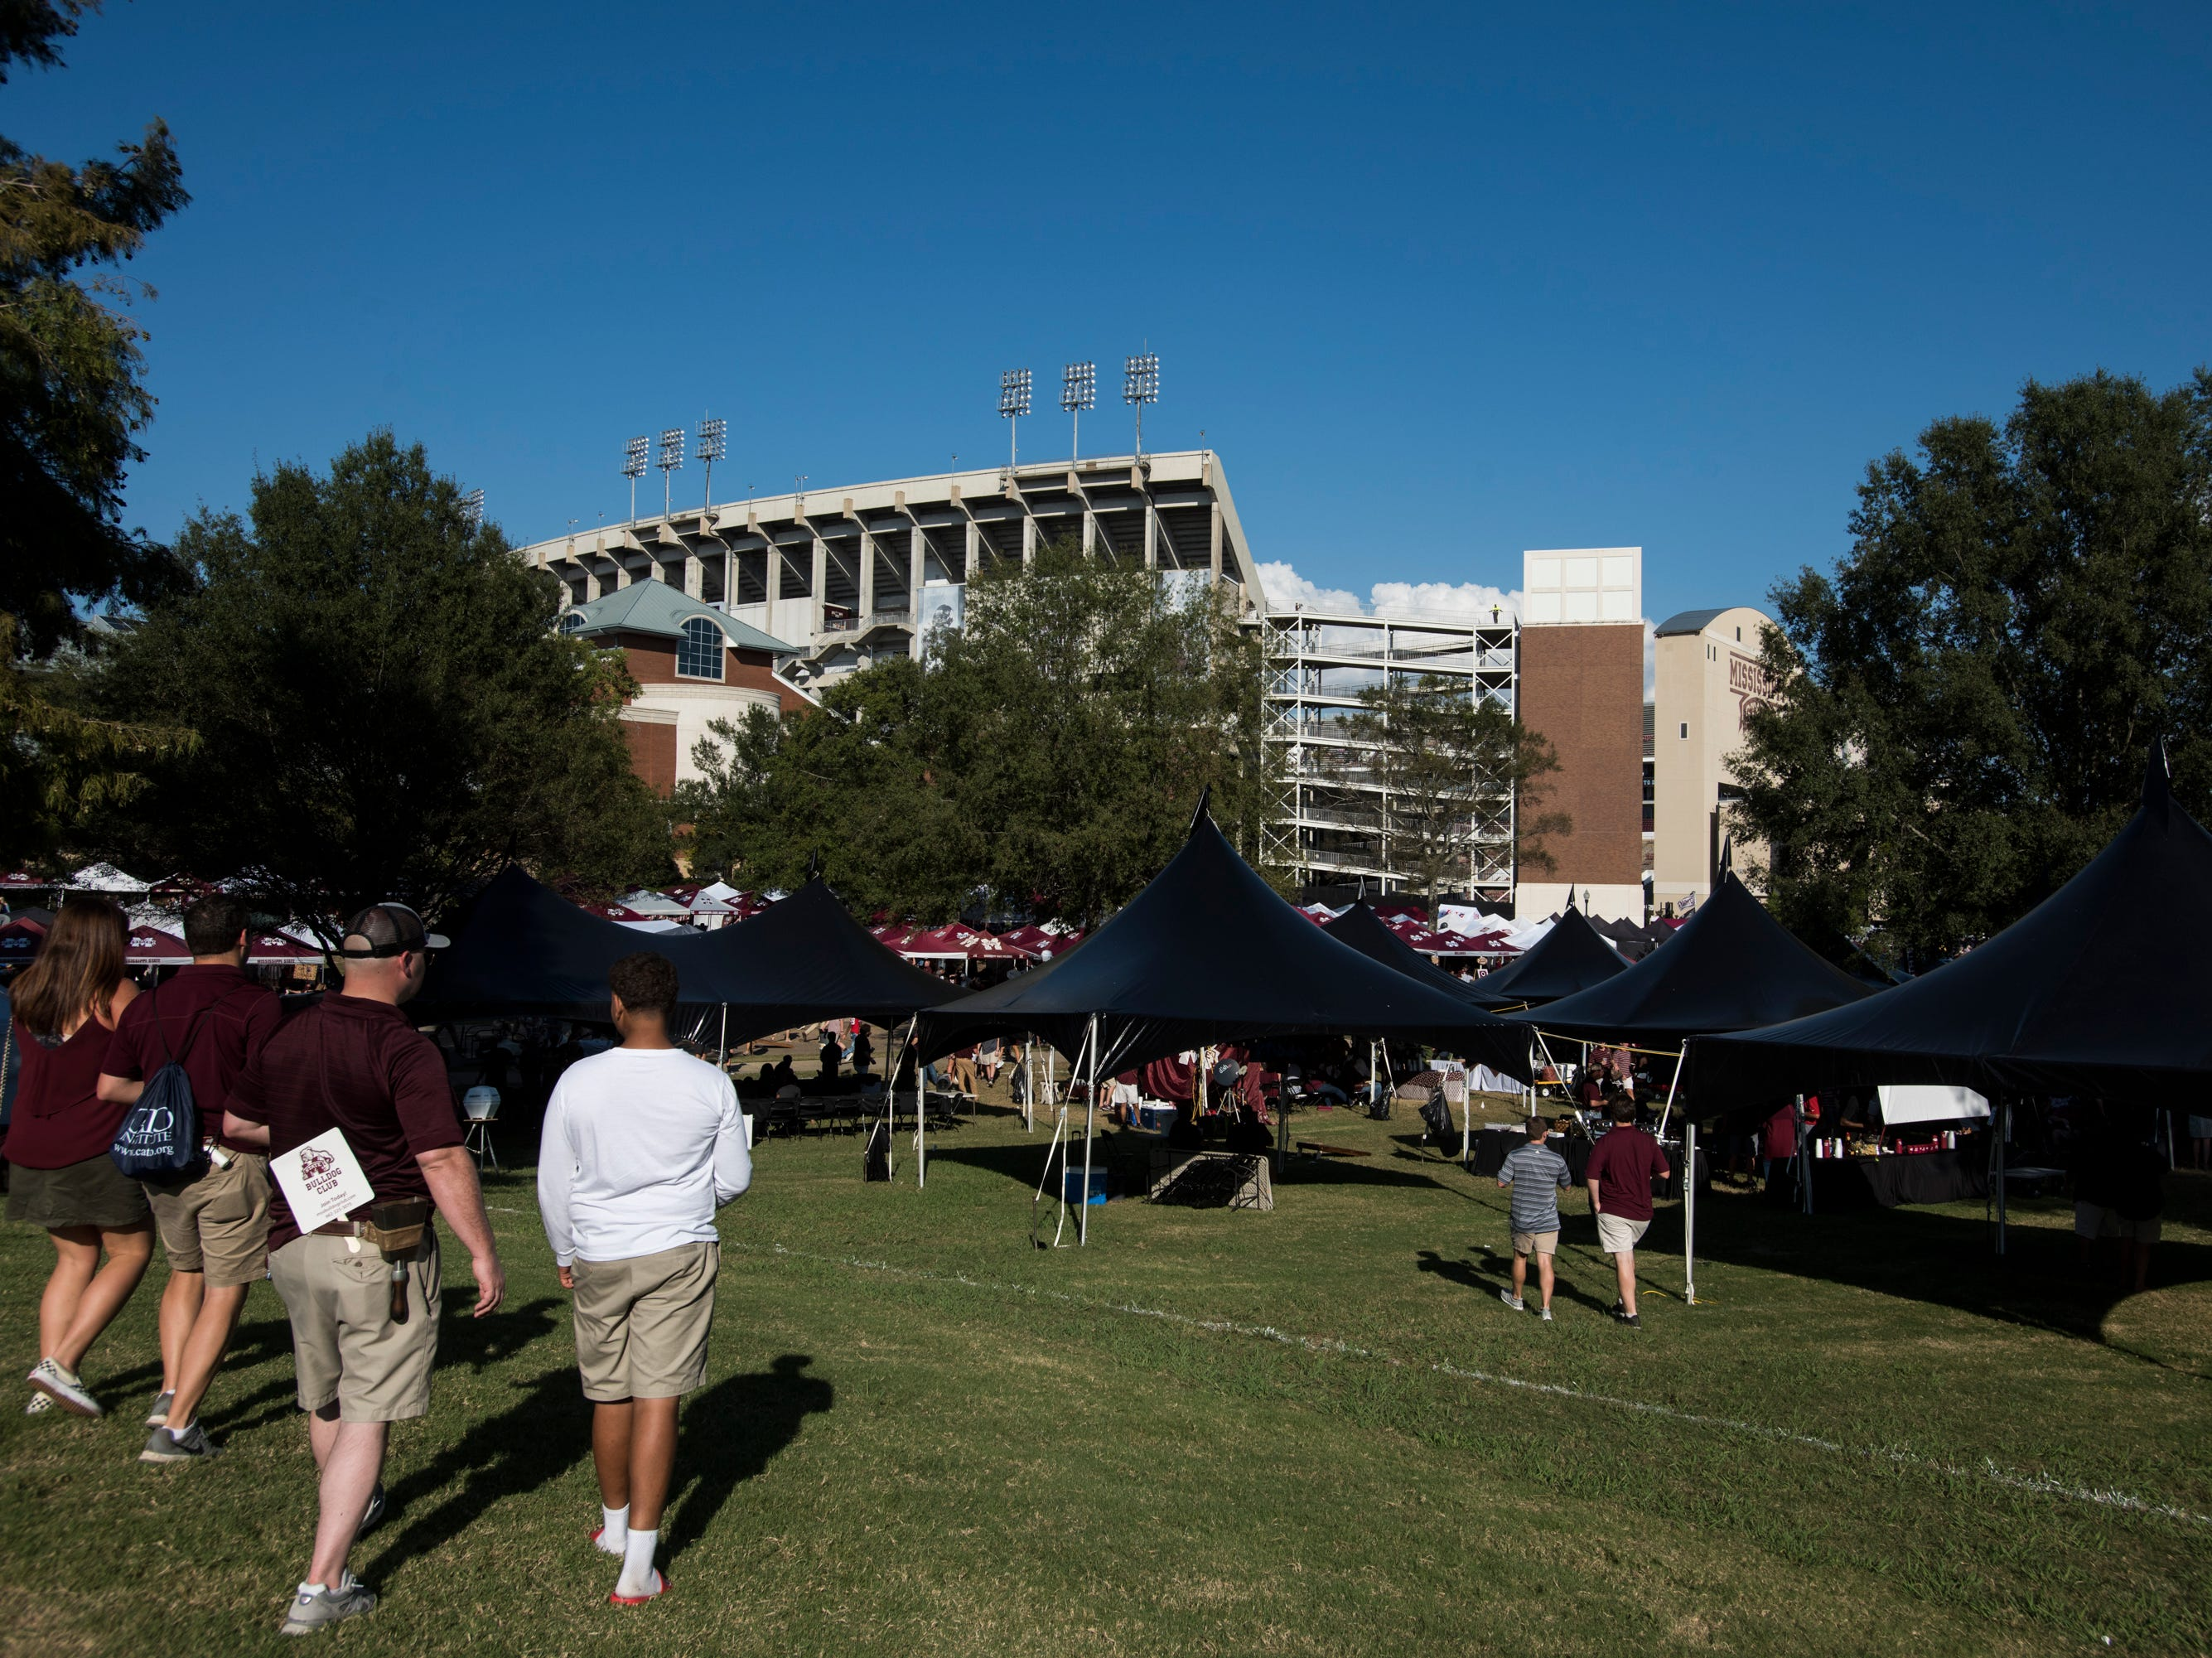 Fans walk toward the game outside Davis Wade Stadium in Starkville, Miss., on Saturday, Oct. 6, 2018.